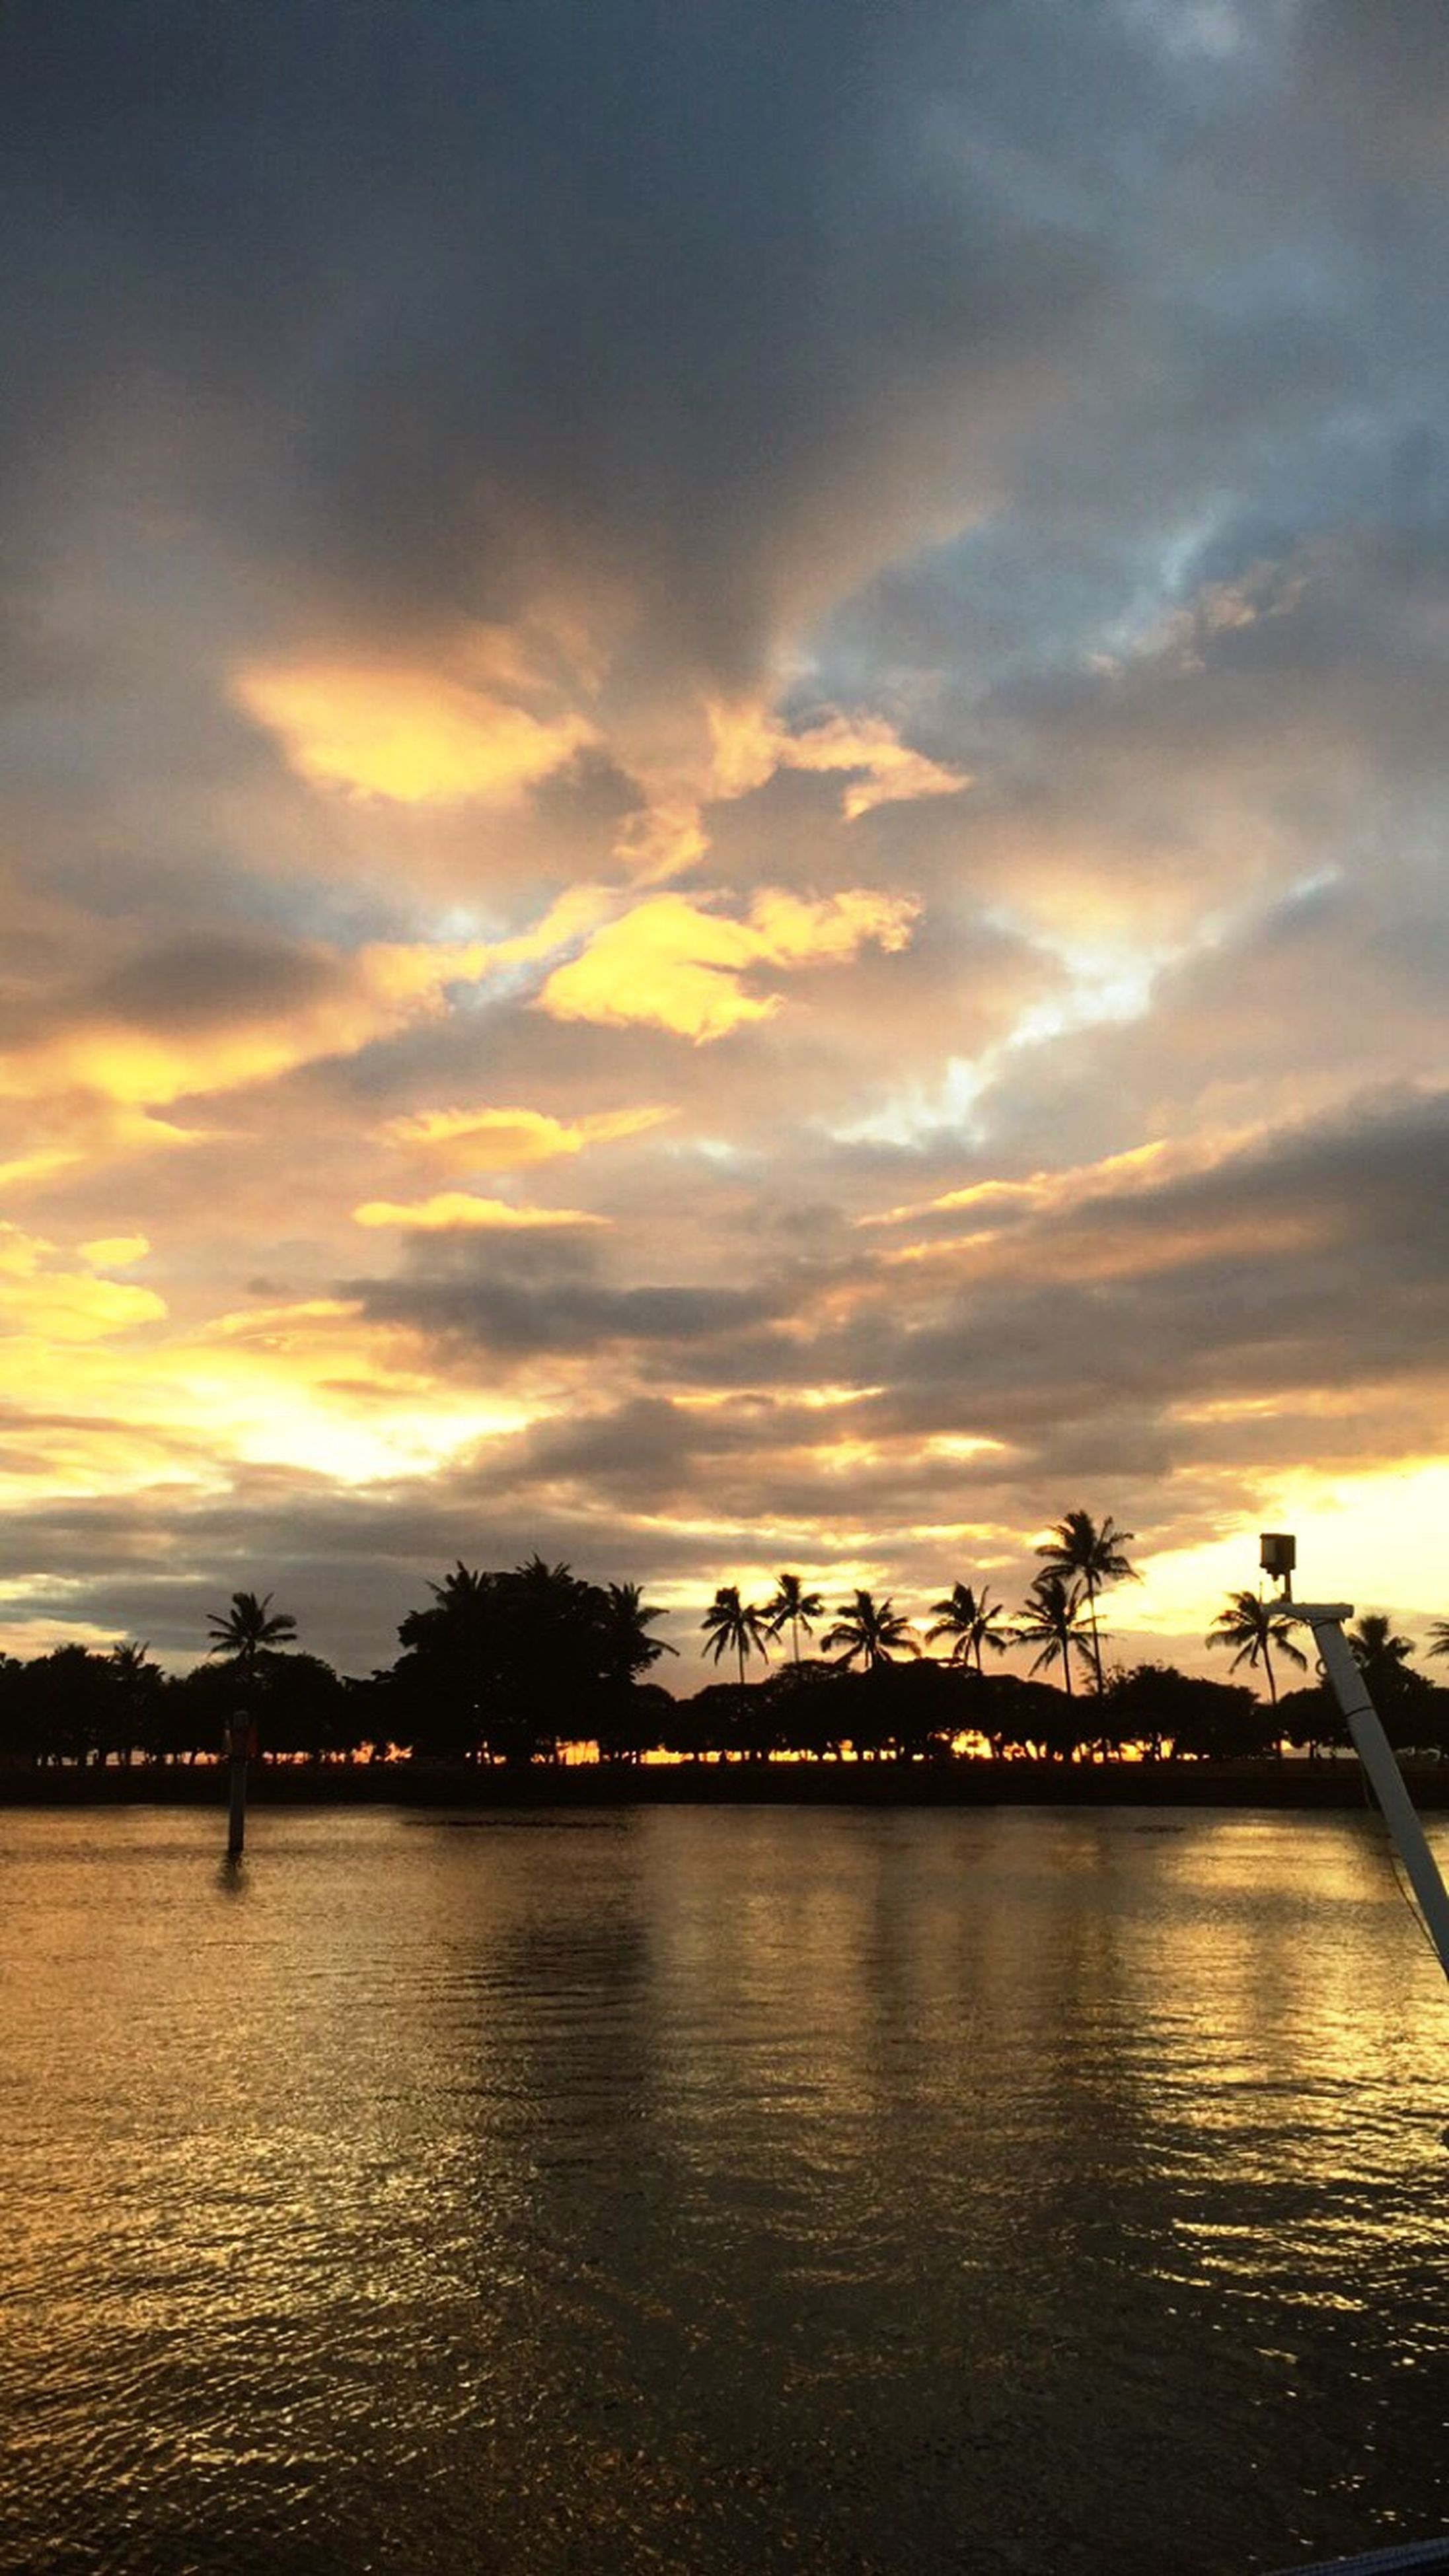 sunset, sky, water, cloud - sky, silhouette, waterfront, scenics, beauty in nature, tranquility, tranquil scene, cloudy, orange color, tree, river, cloud, nature, dramatic sky, reflection, idyllic, dusk